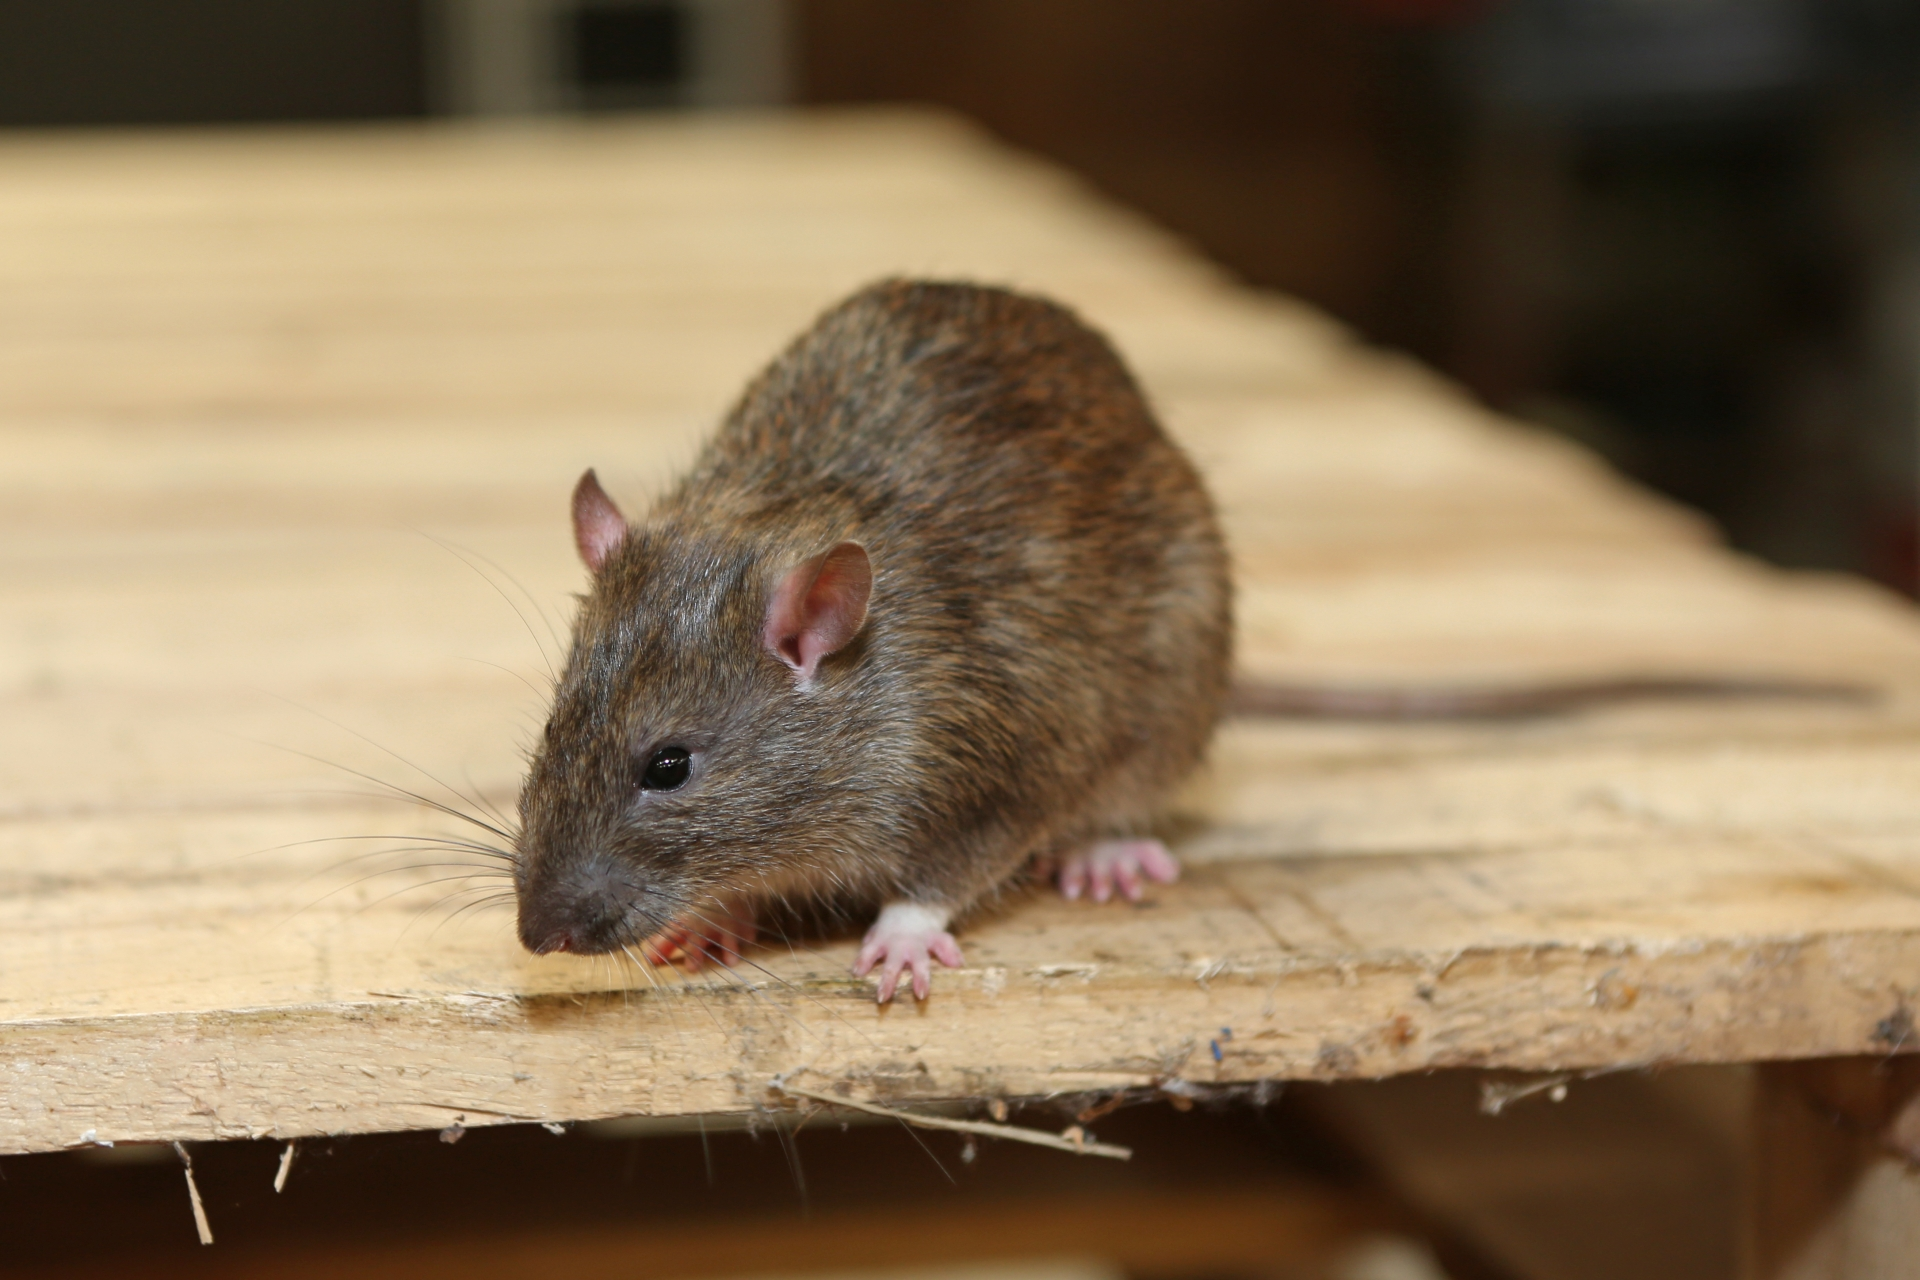 Rat Control, Pest Control in Woodford Green, Woodford, IG8. Call Now 020 8166 9746